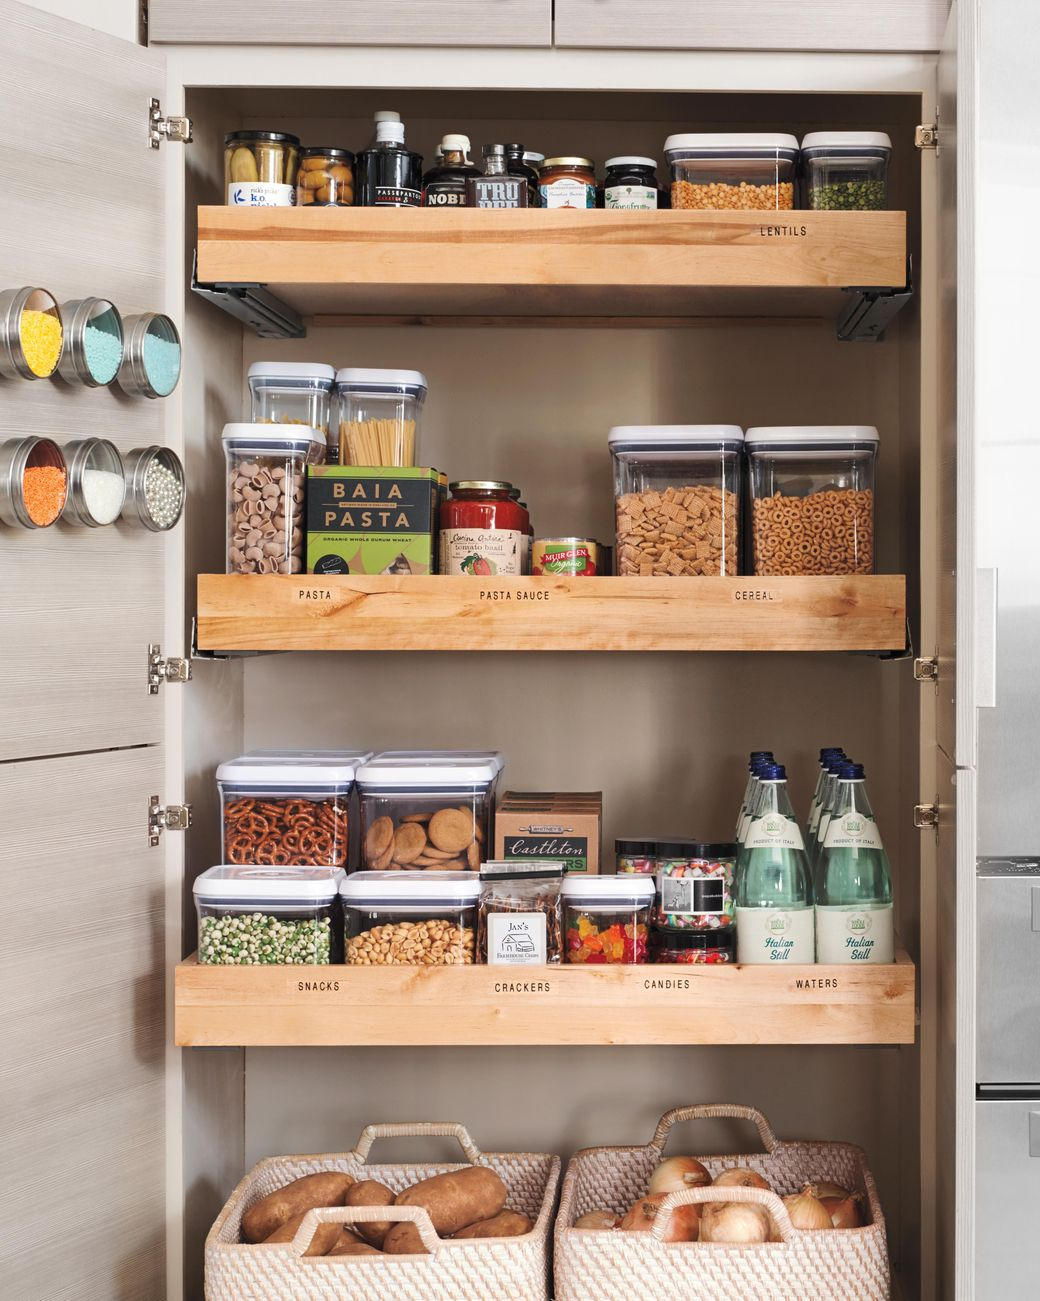 small kitchen storage ideas for a more efficient space small kitchen storage ideas for a more efficient space   storage      rh   pinterest com